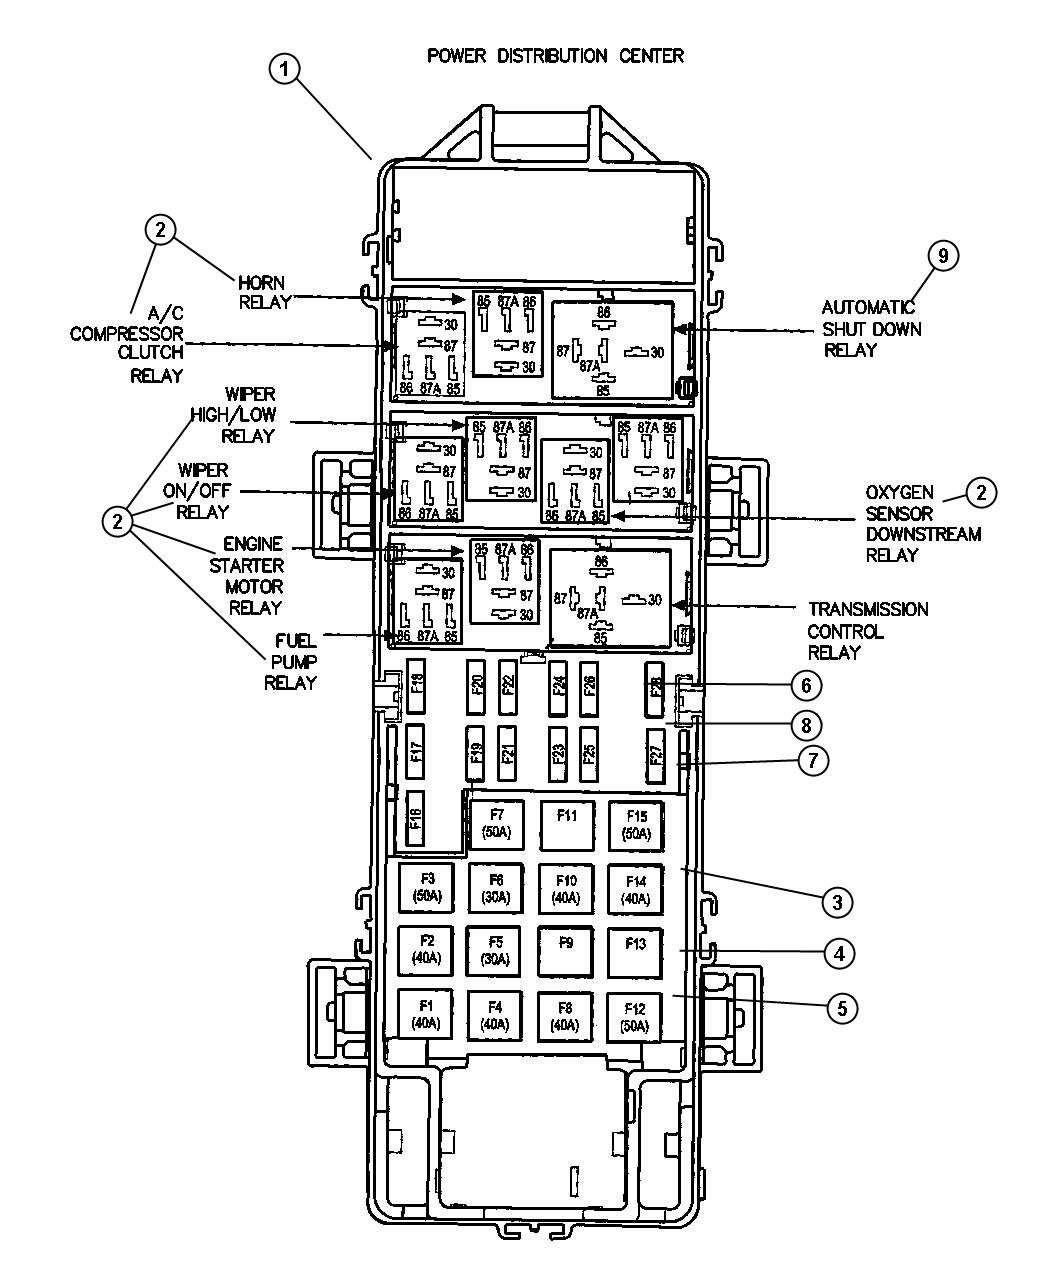 Jeep Grand Cherokee Power Distribution Center Diagram